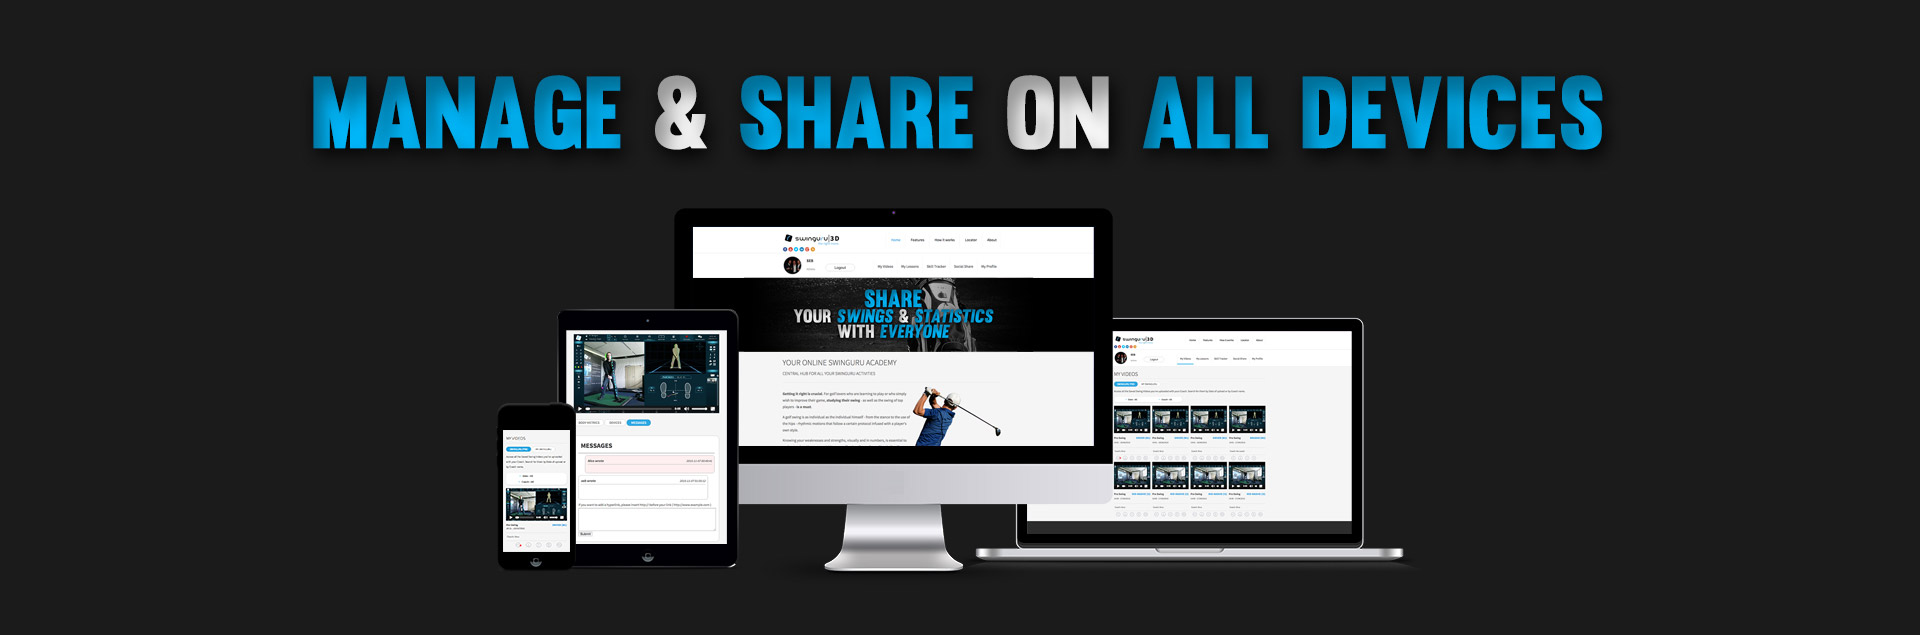 Manage & share on all devices